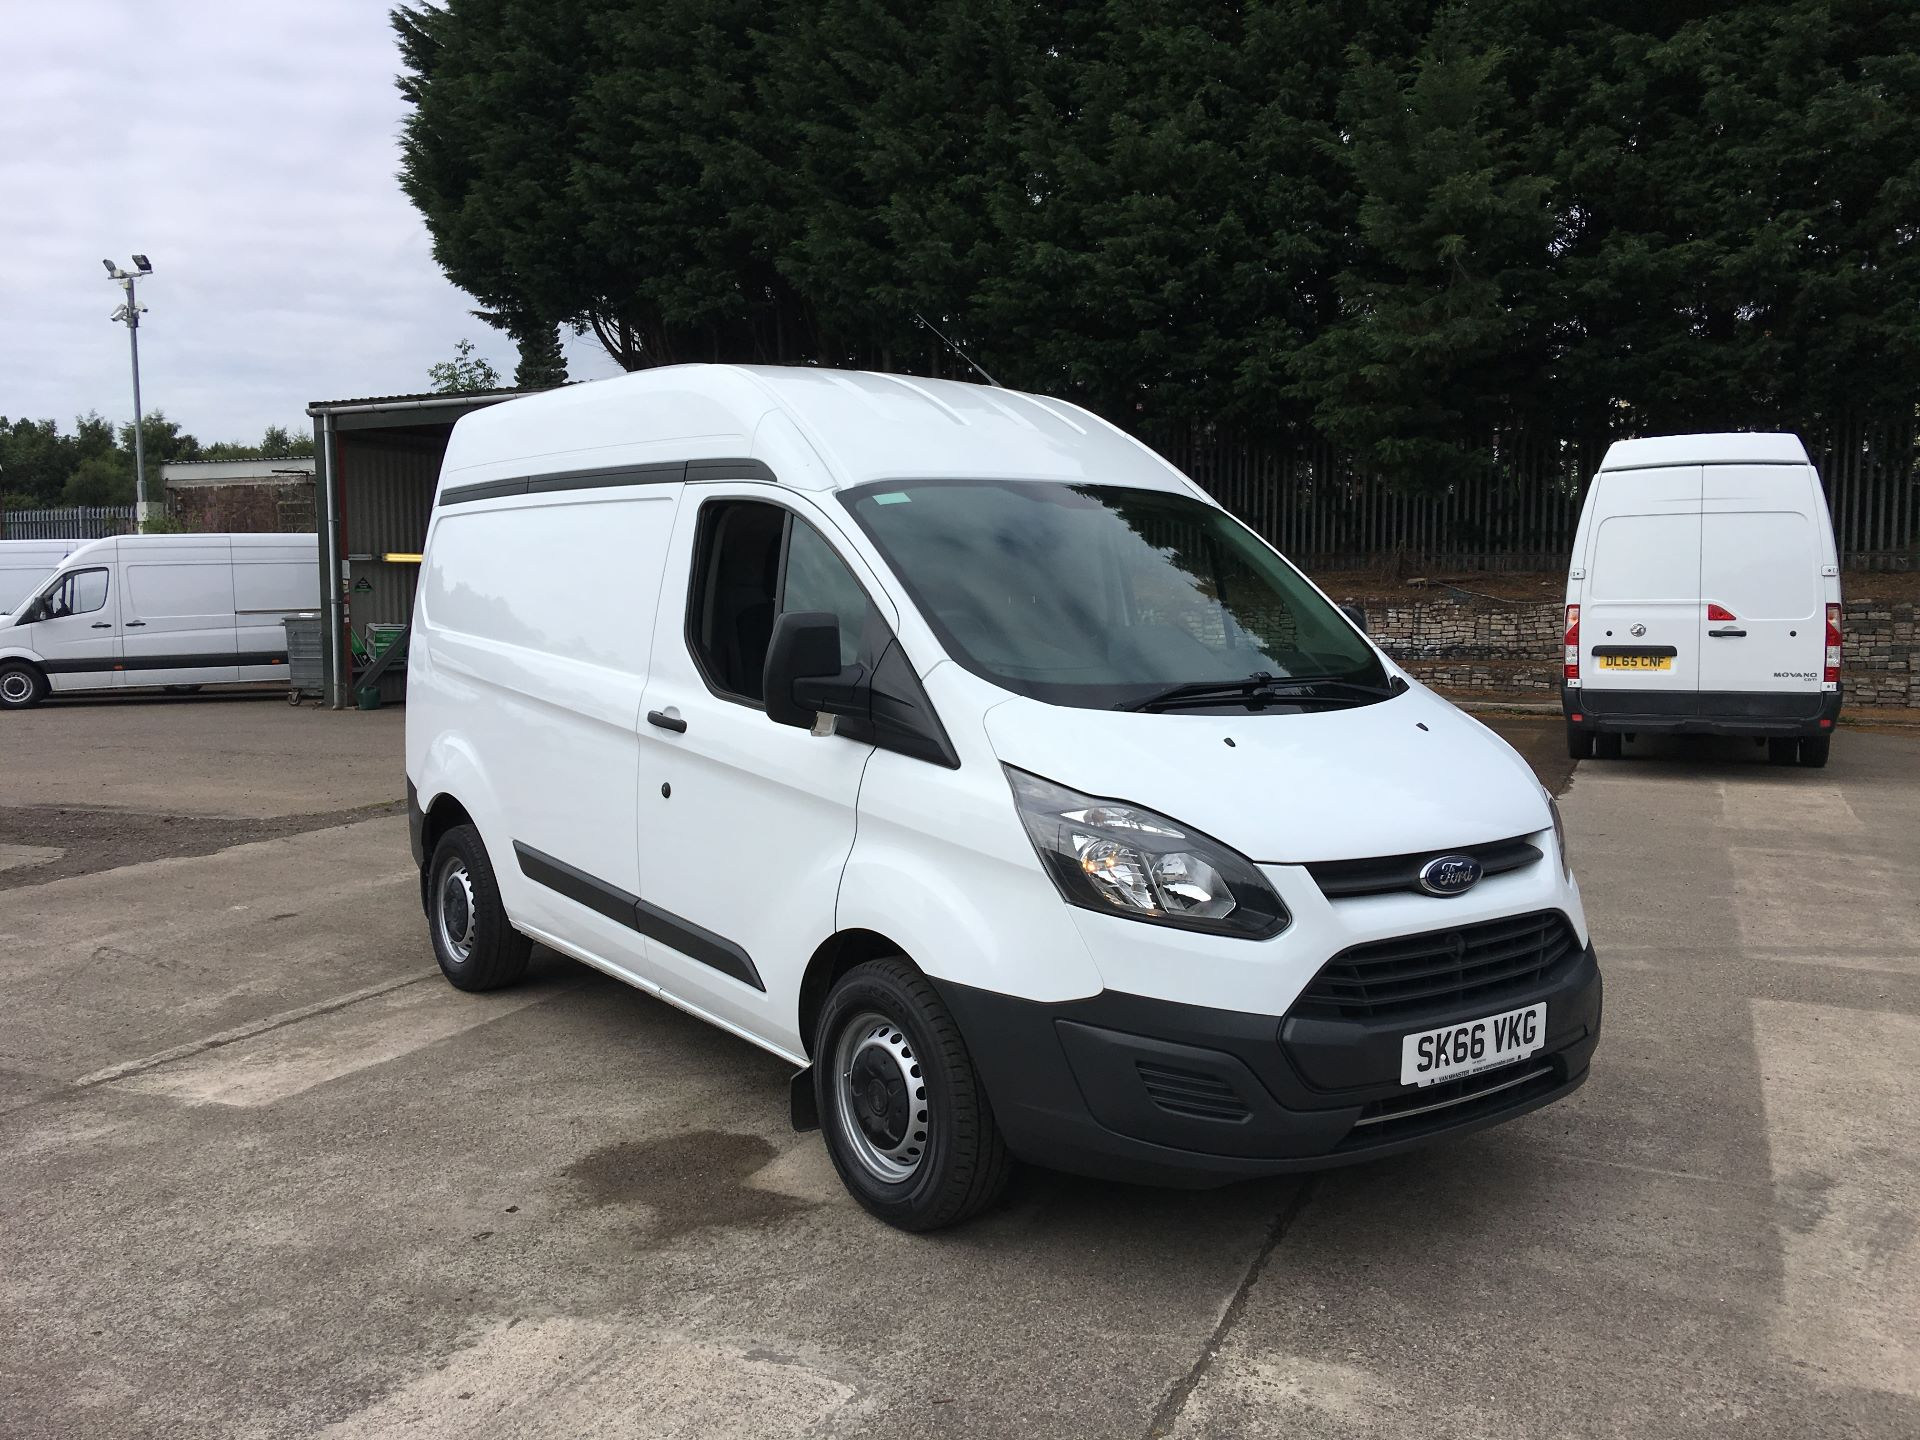 2016 Ford Transit Custom 290 L1 DIESEL FWD 2.0 TDCI 105PS HIGH ROOF VAN EURO 6 (SK66VKG)